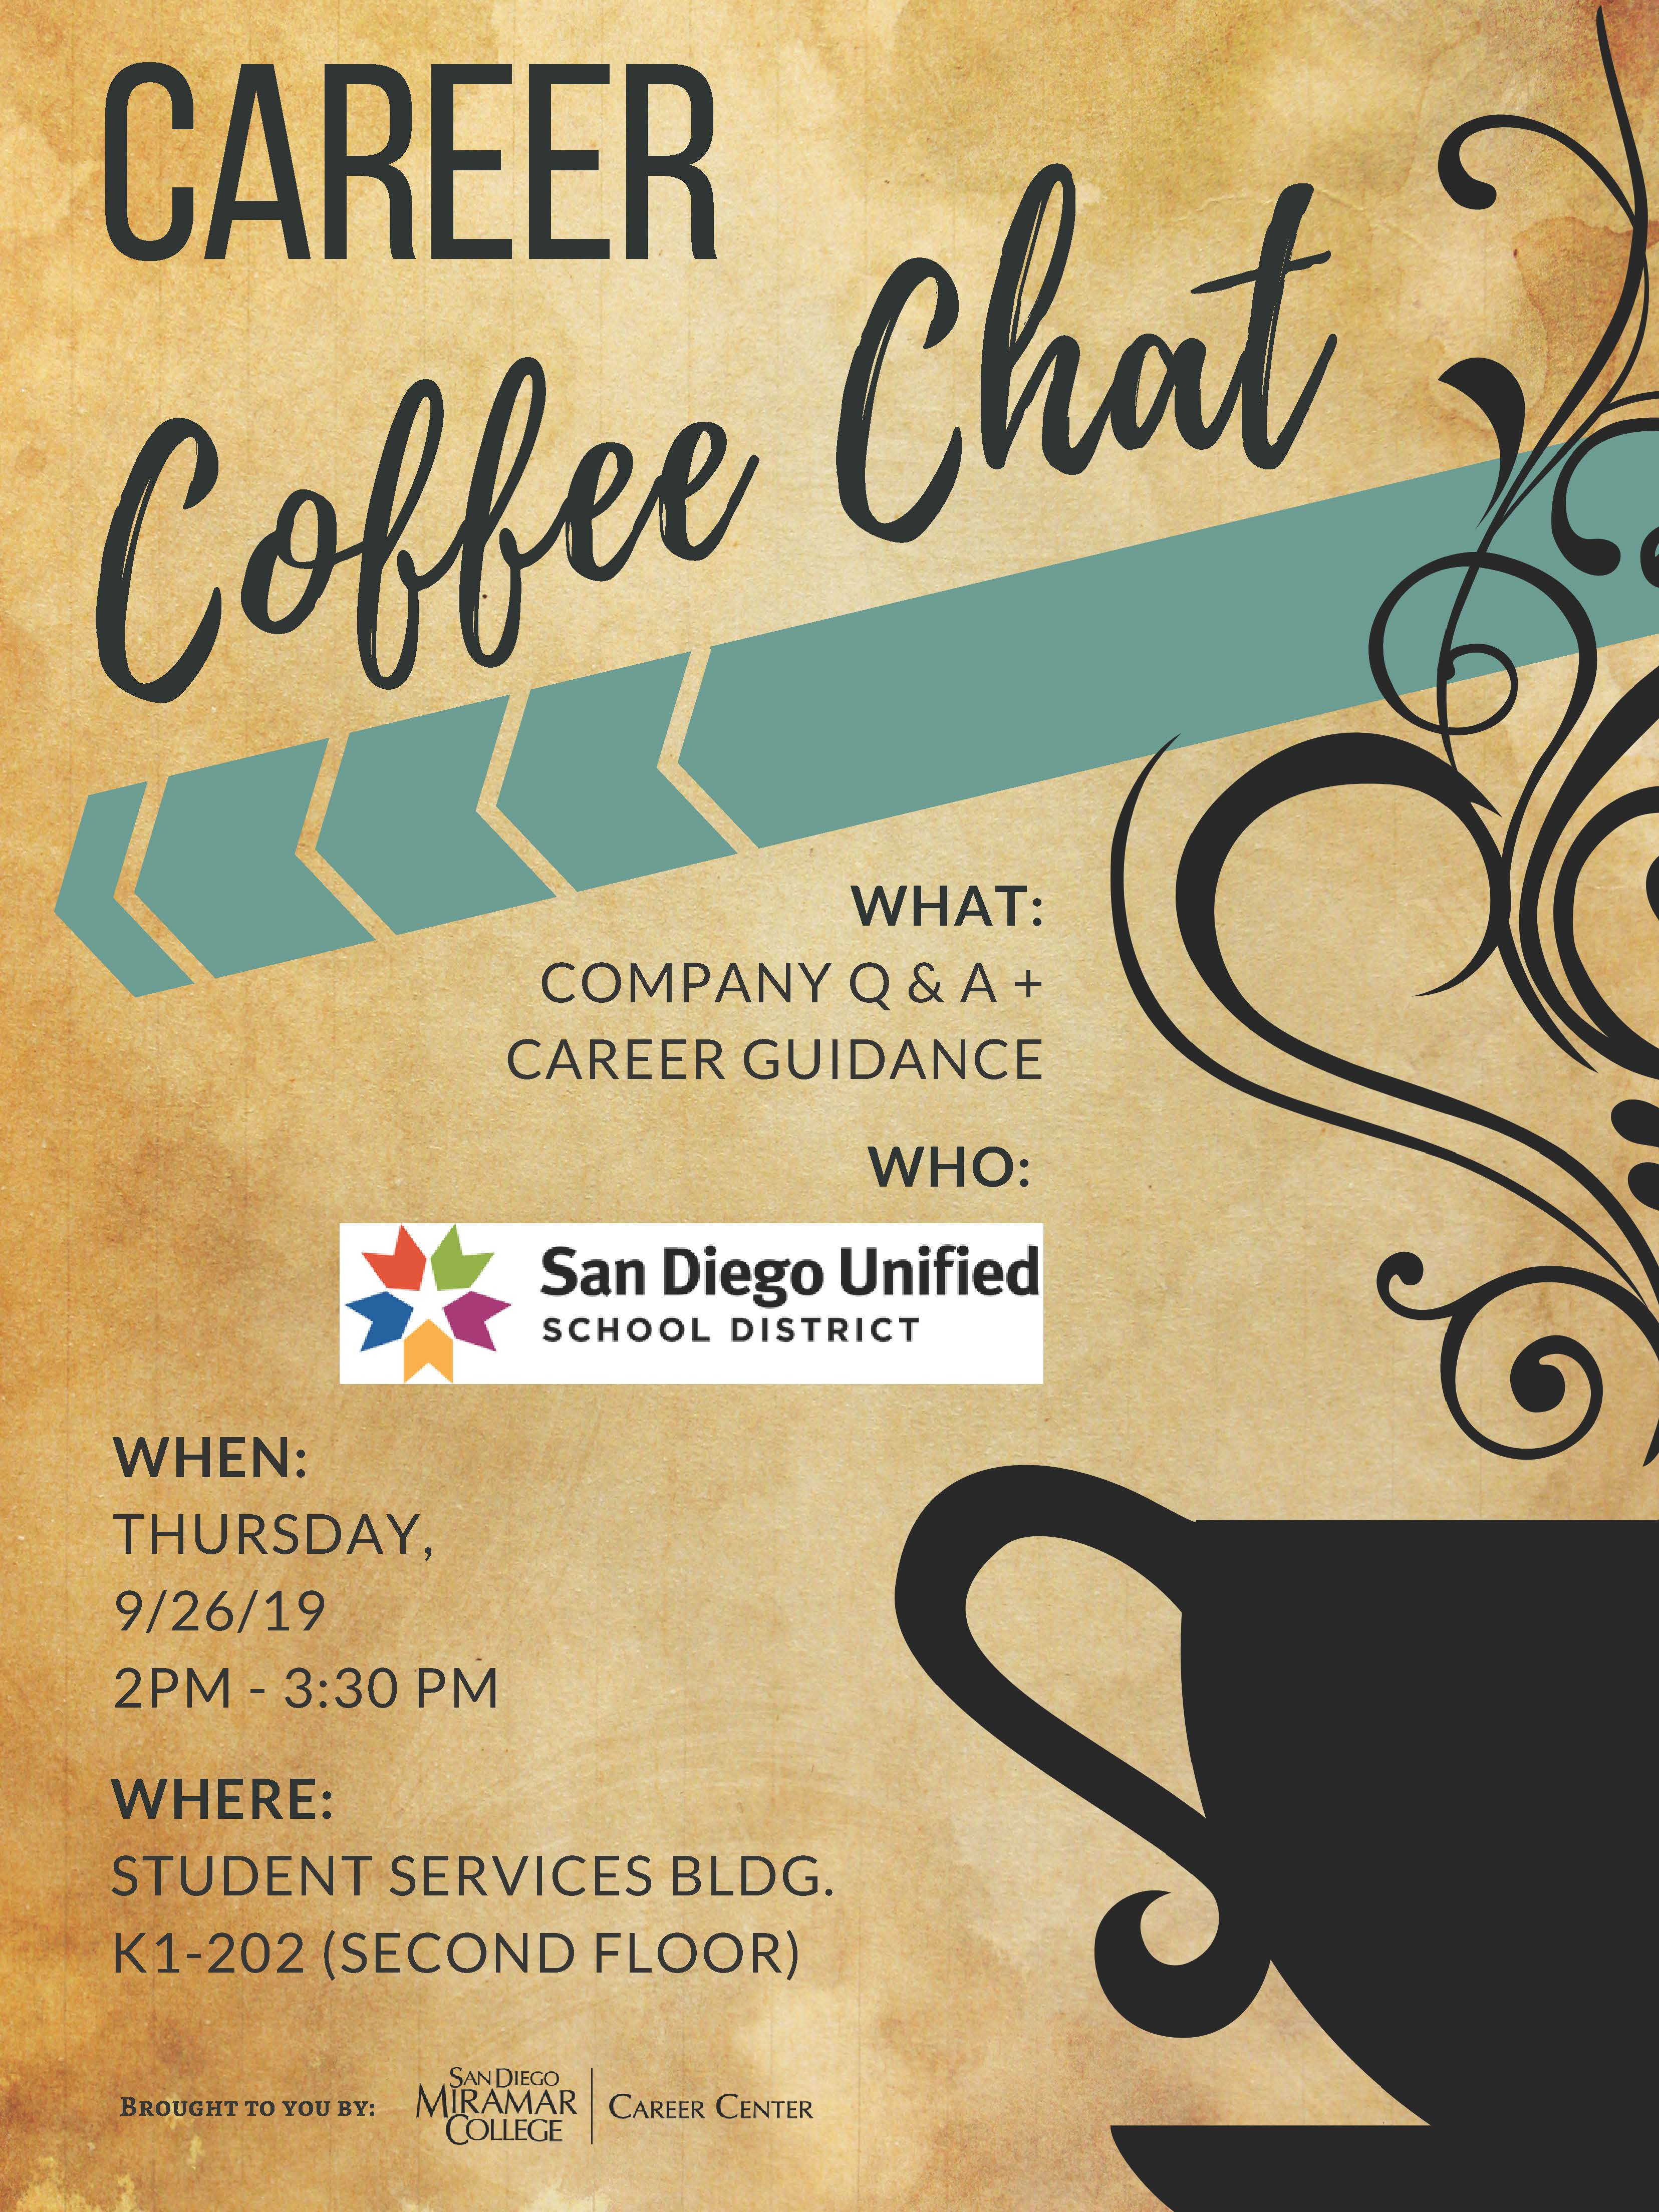 Career Center Coffee Chat Event with San Diego Unified School District as Employer Presenter on Thursday, September 26 from 2:00PM-3:30PM in Room K1-202, Second Floor of the Student Services Building.